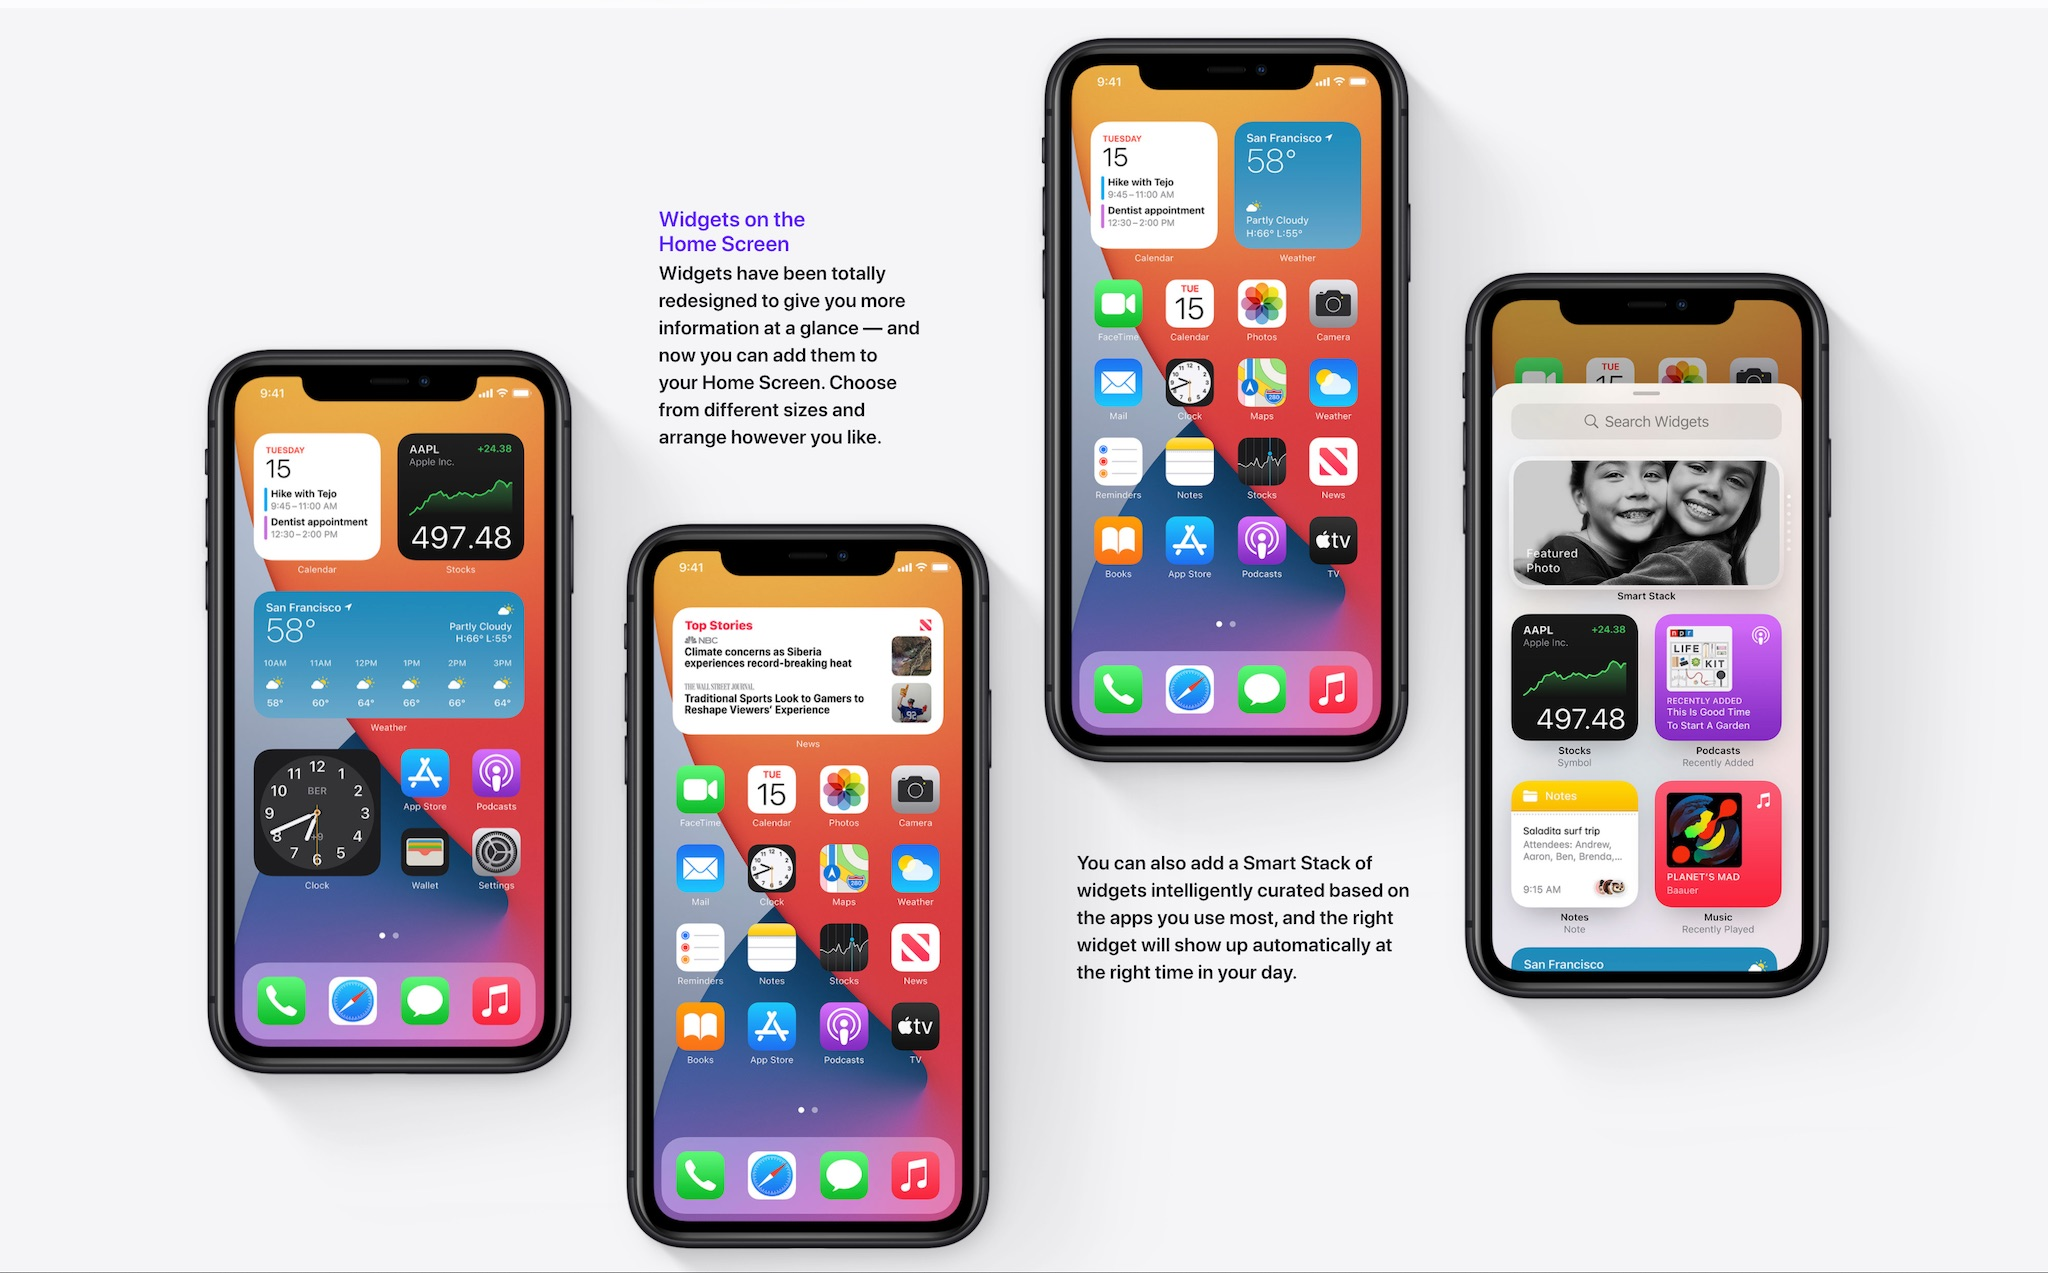 Widgets graphics from the Apple iOS 14 website